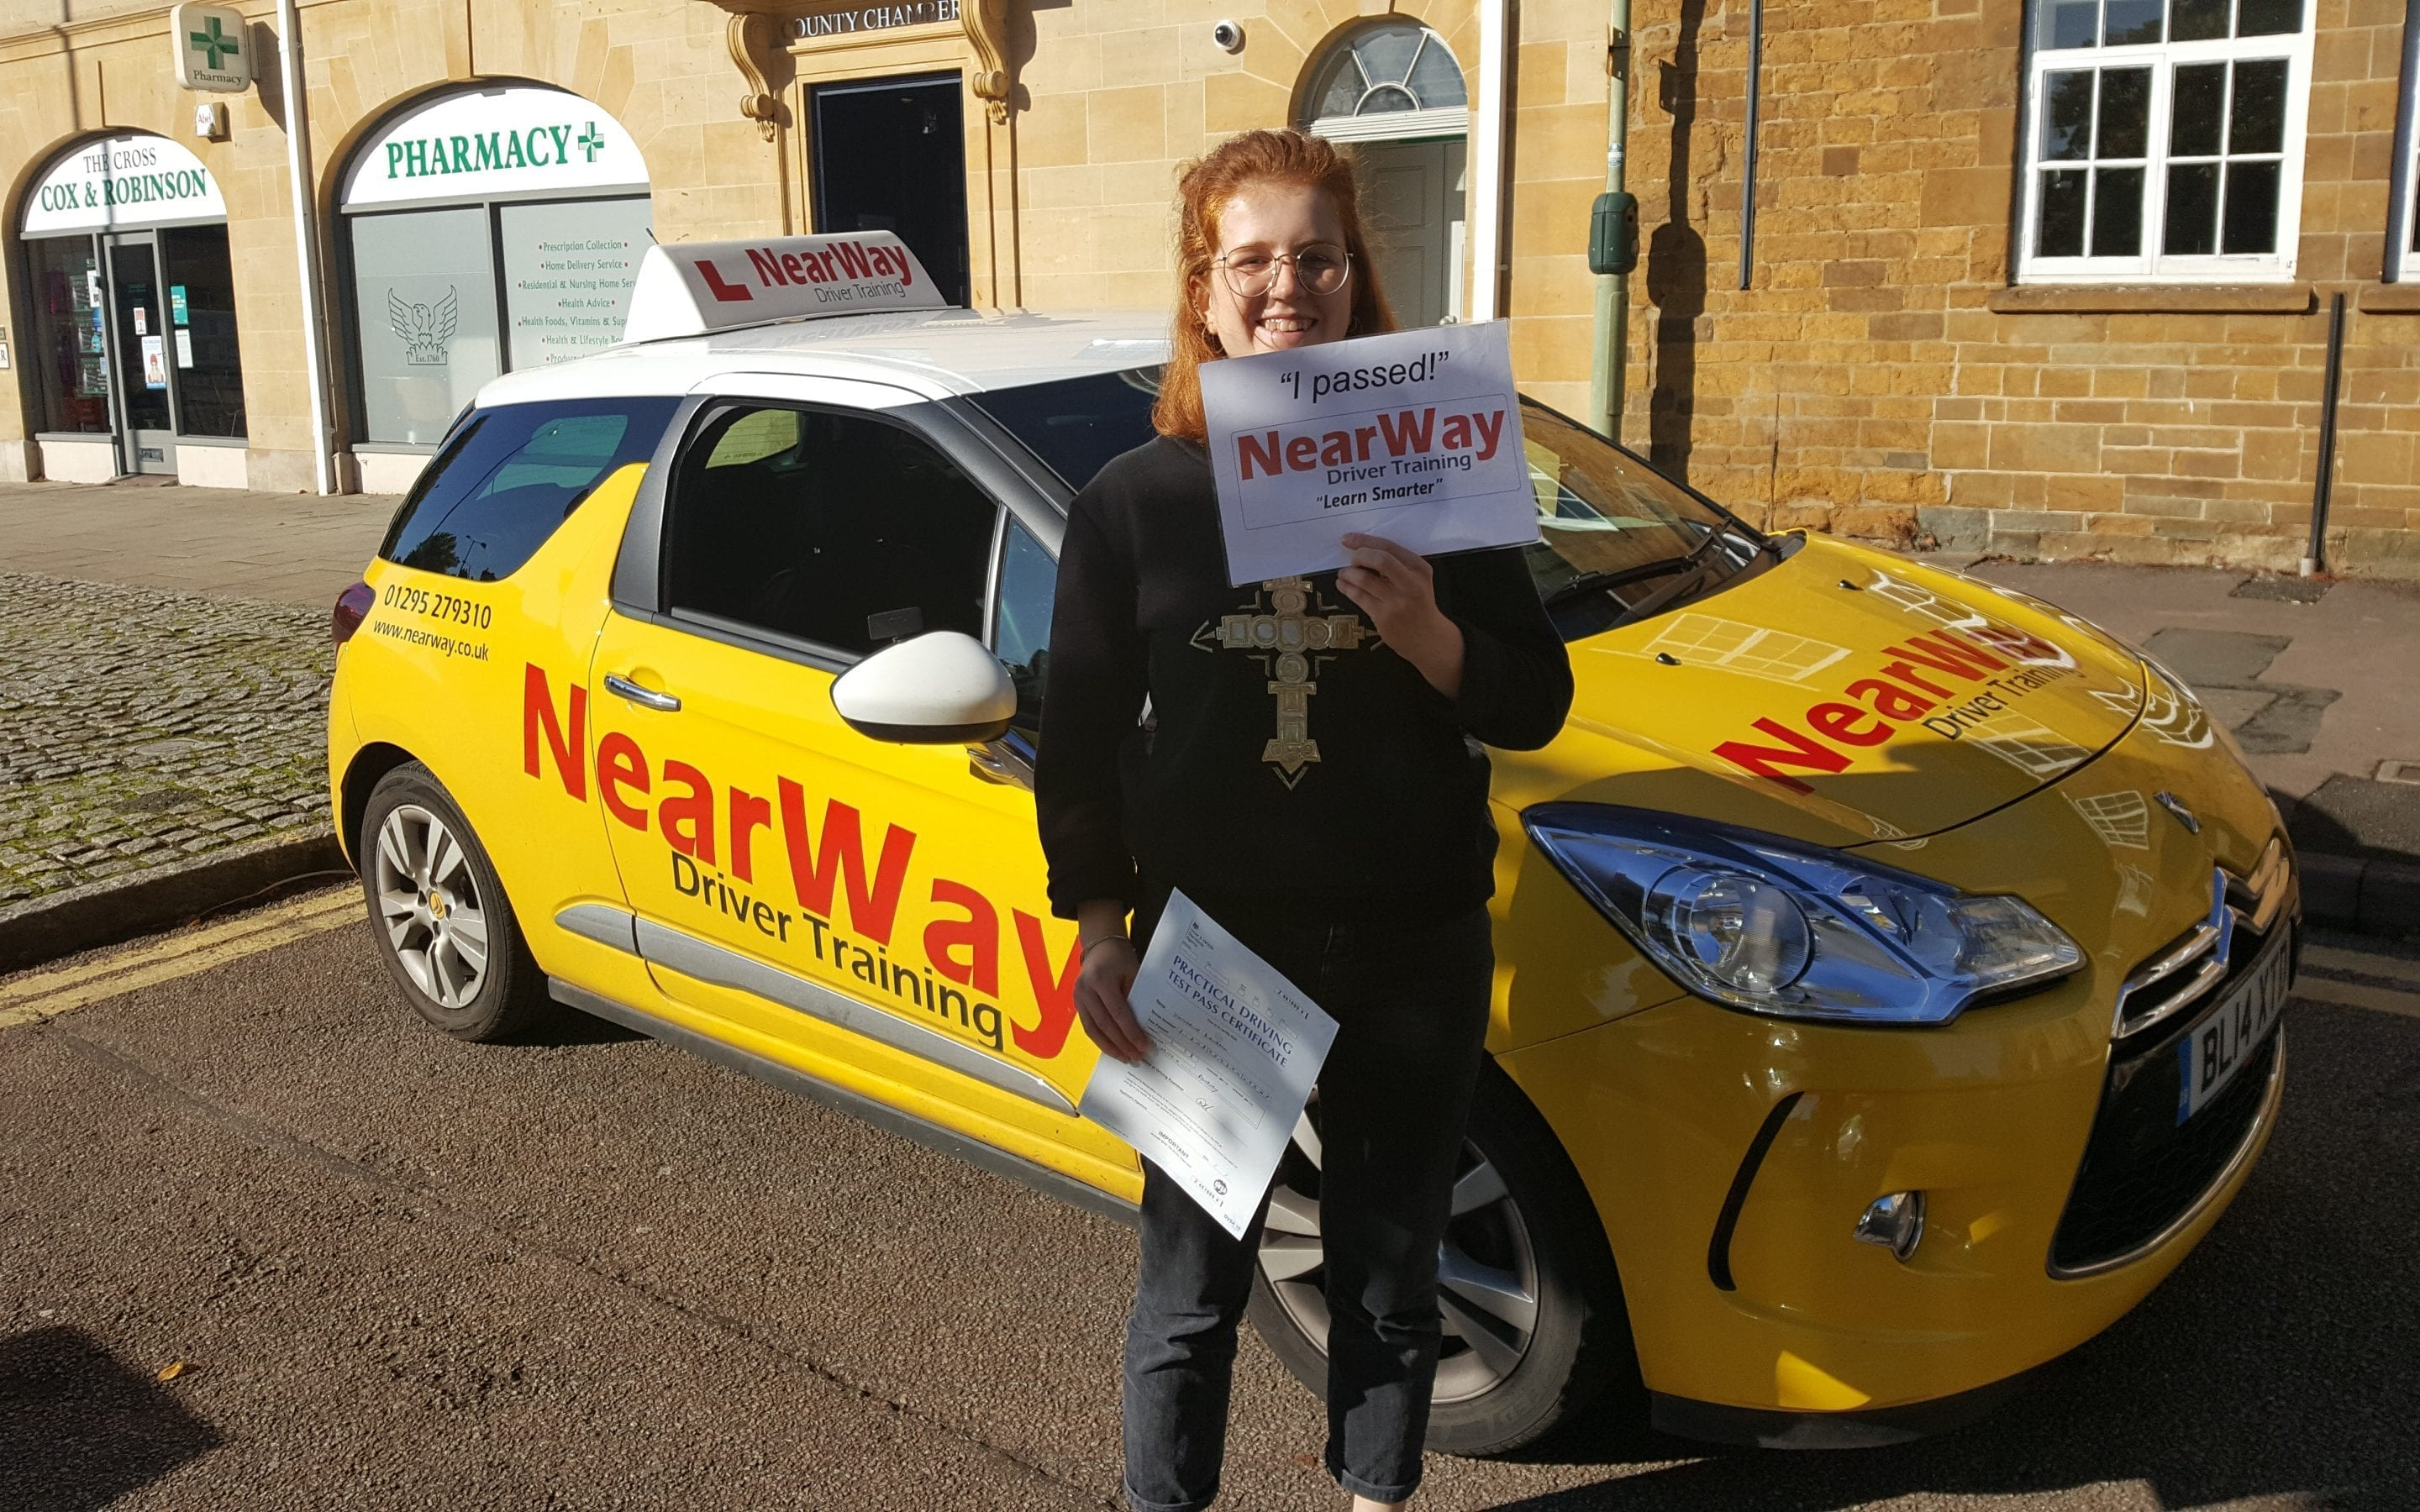 Kate Birkbeck – Driving Lessons Banbury Review